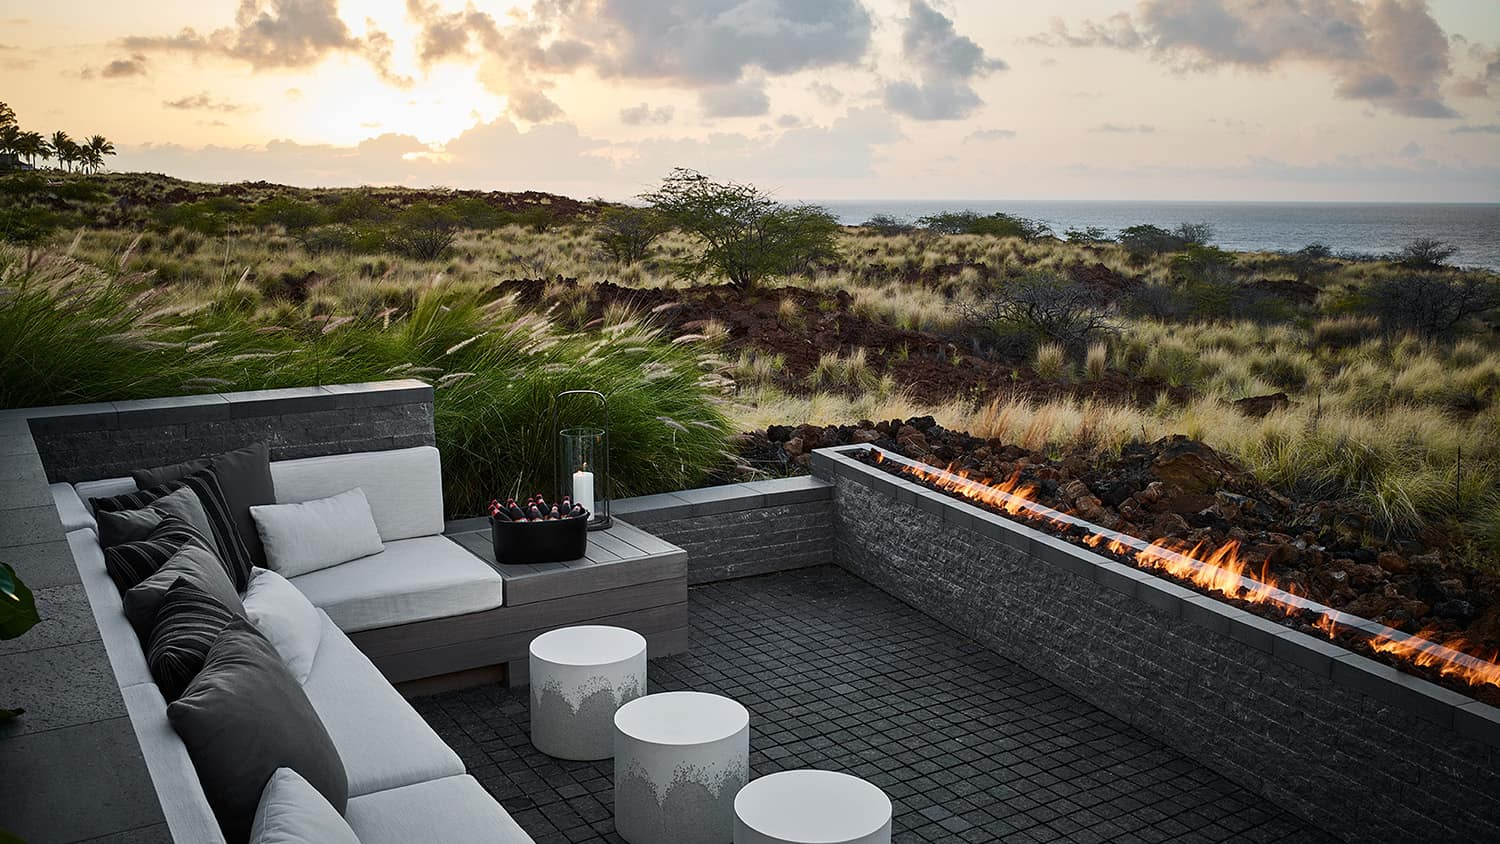 hawaii-holiday-home-patio-with-firepit